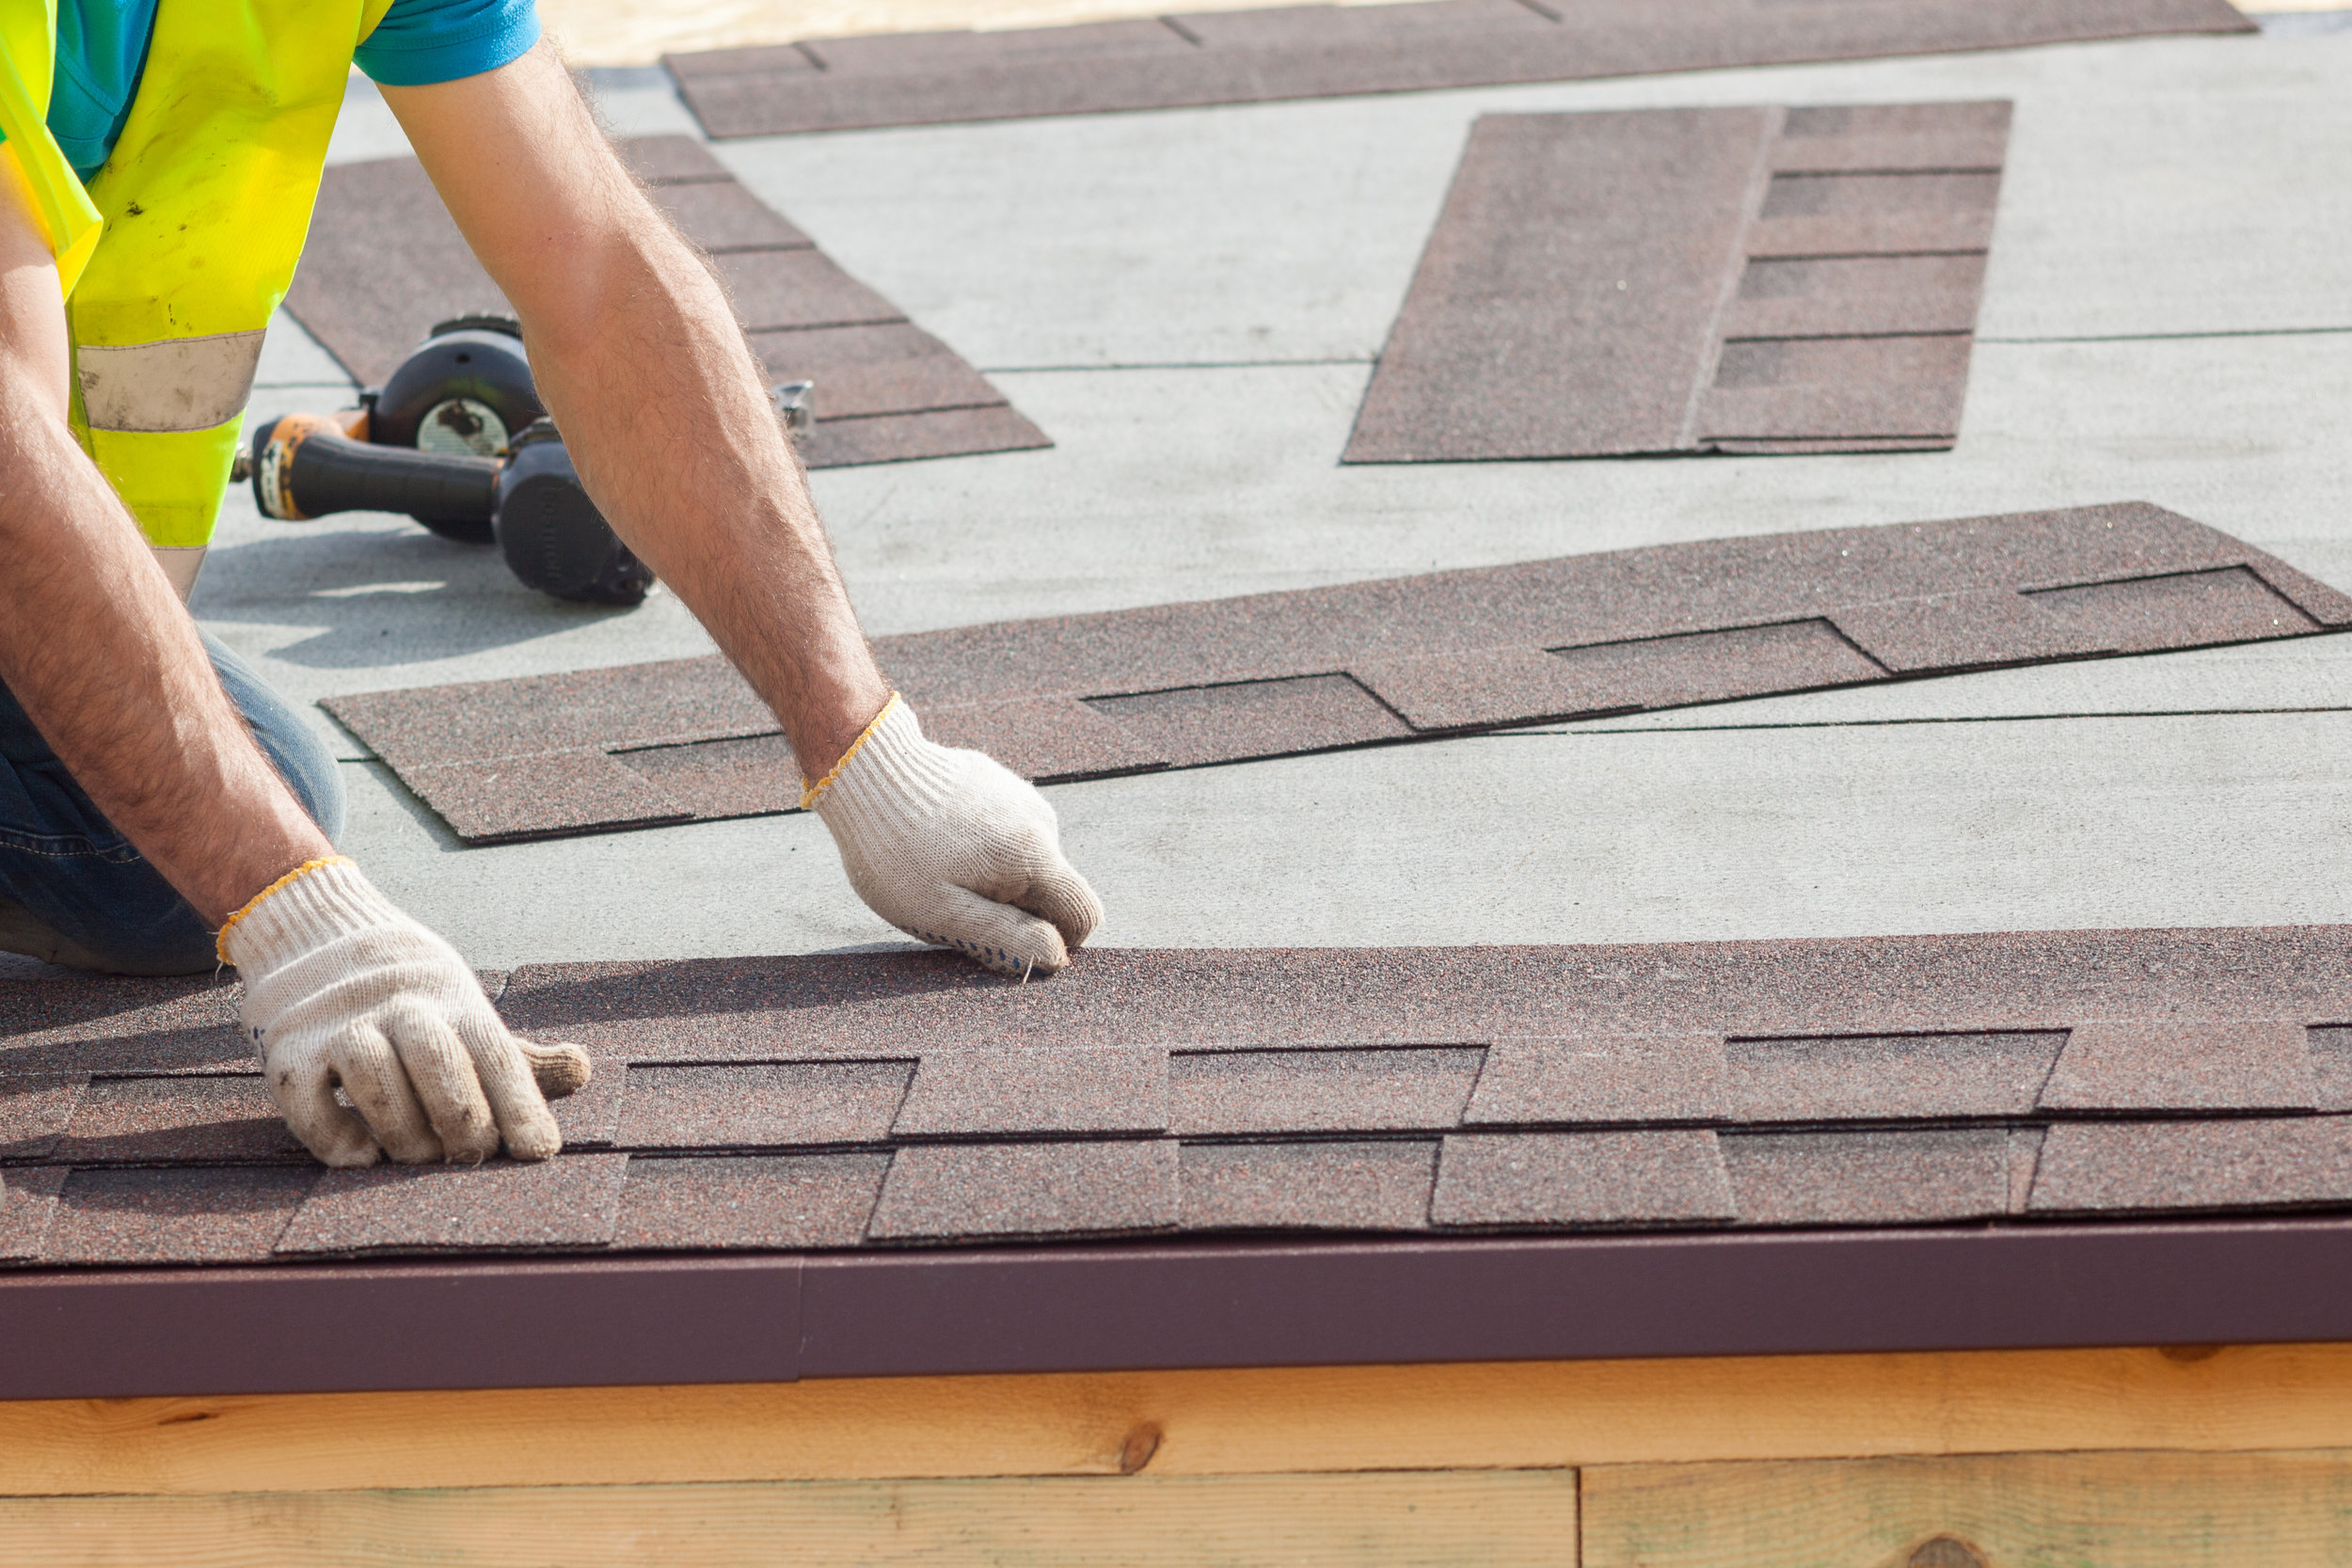 RESIDENTIAL AND COMMERCIAL SERVICES    - New Roofs    - Roofing Repairs    - Storm Damage Repair    - Consultation    - Inspection